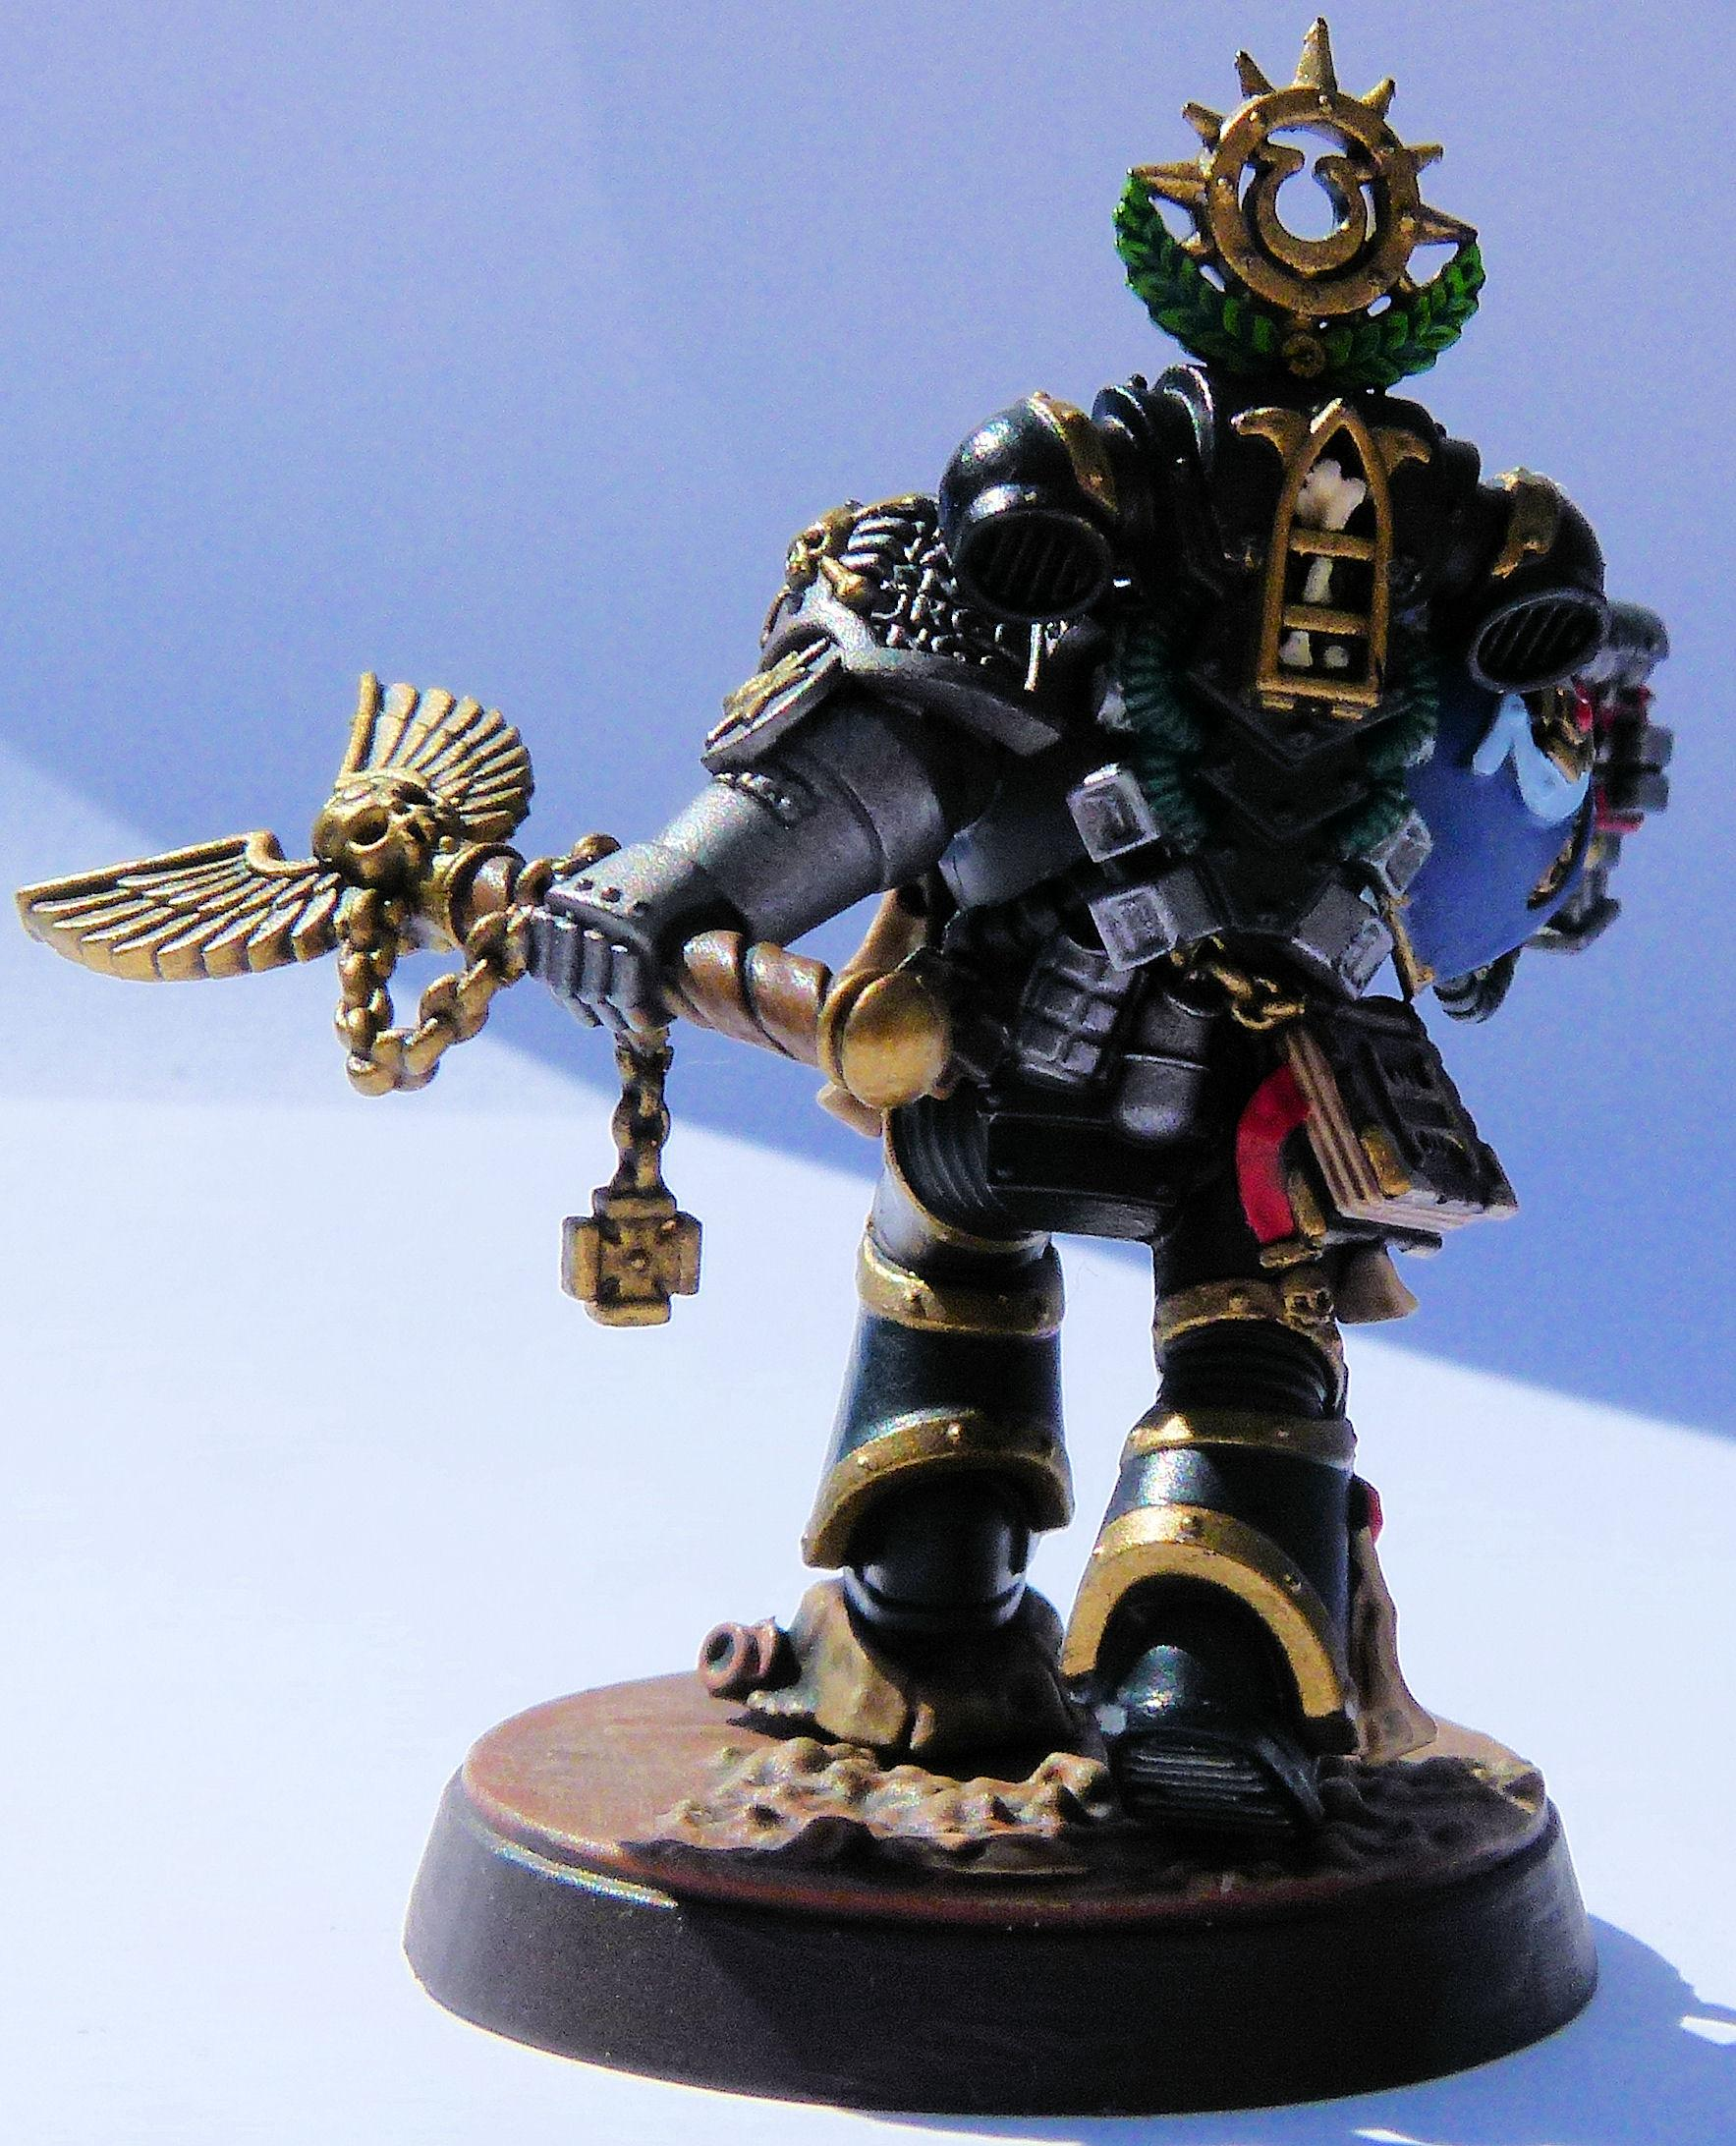 Deathwatch Chaplain Cassius Rear